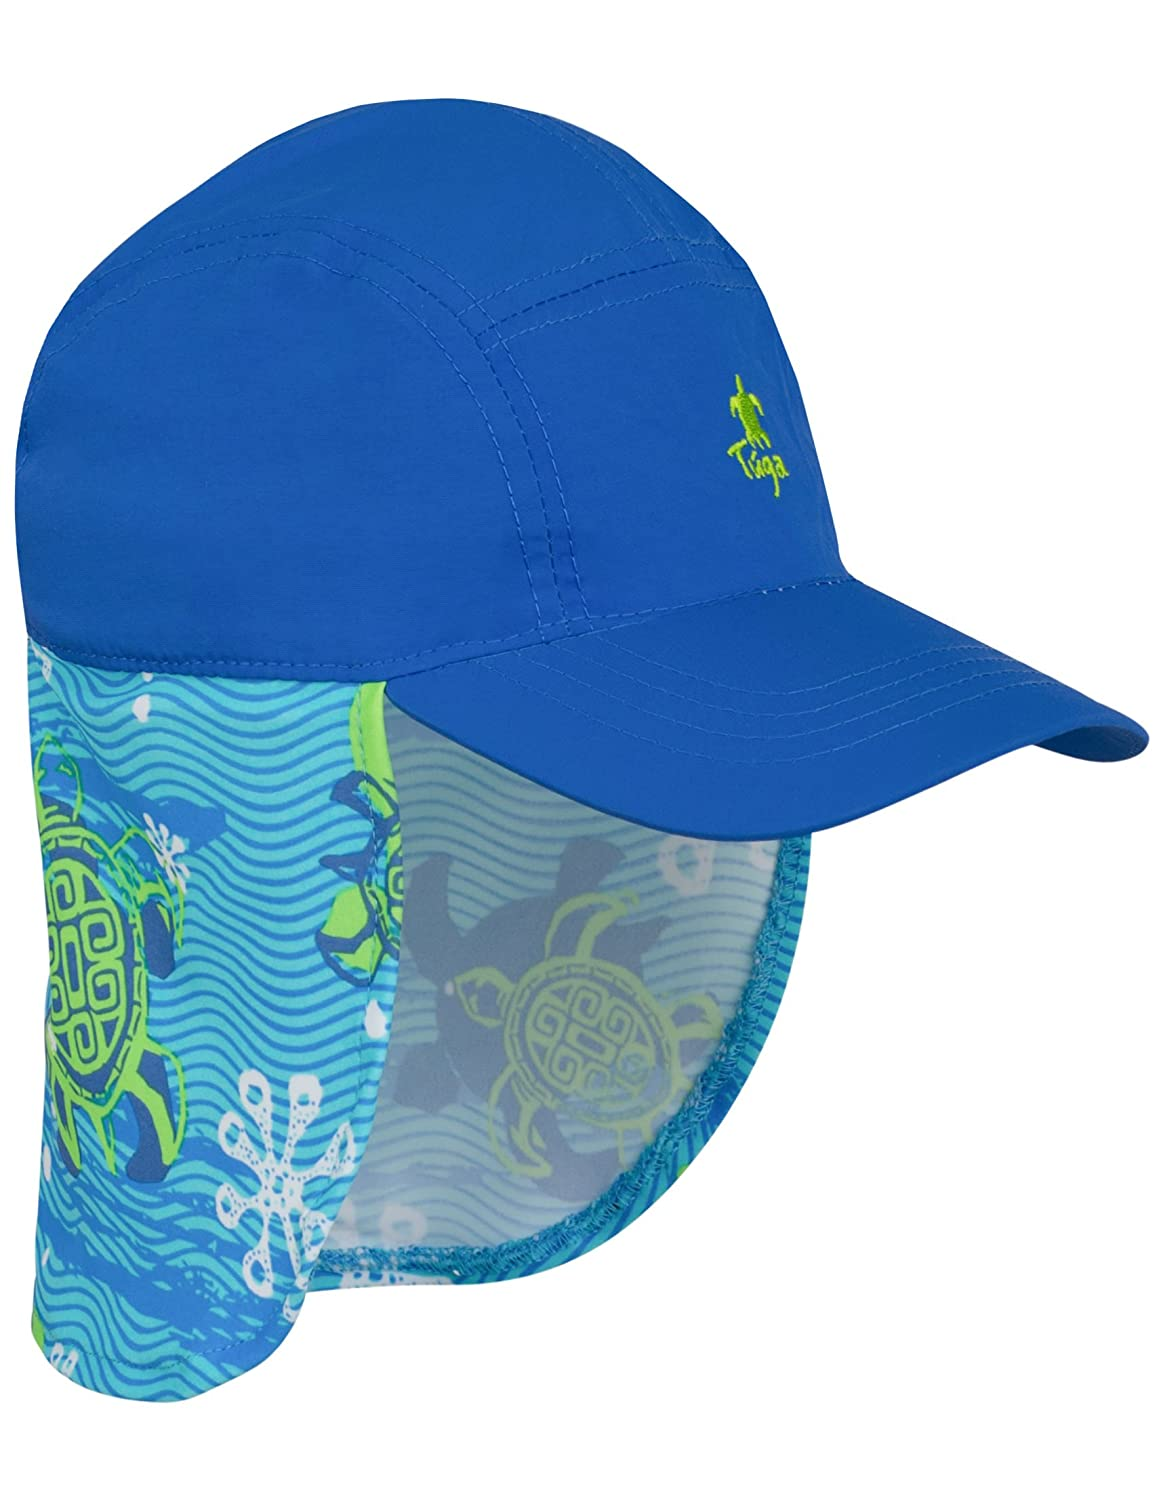 18b39431 Our Tuga kids legionnaire style swim hats provide excellent sun protection,  comfort and unique prints designed in sunny San Diego, California.